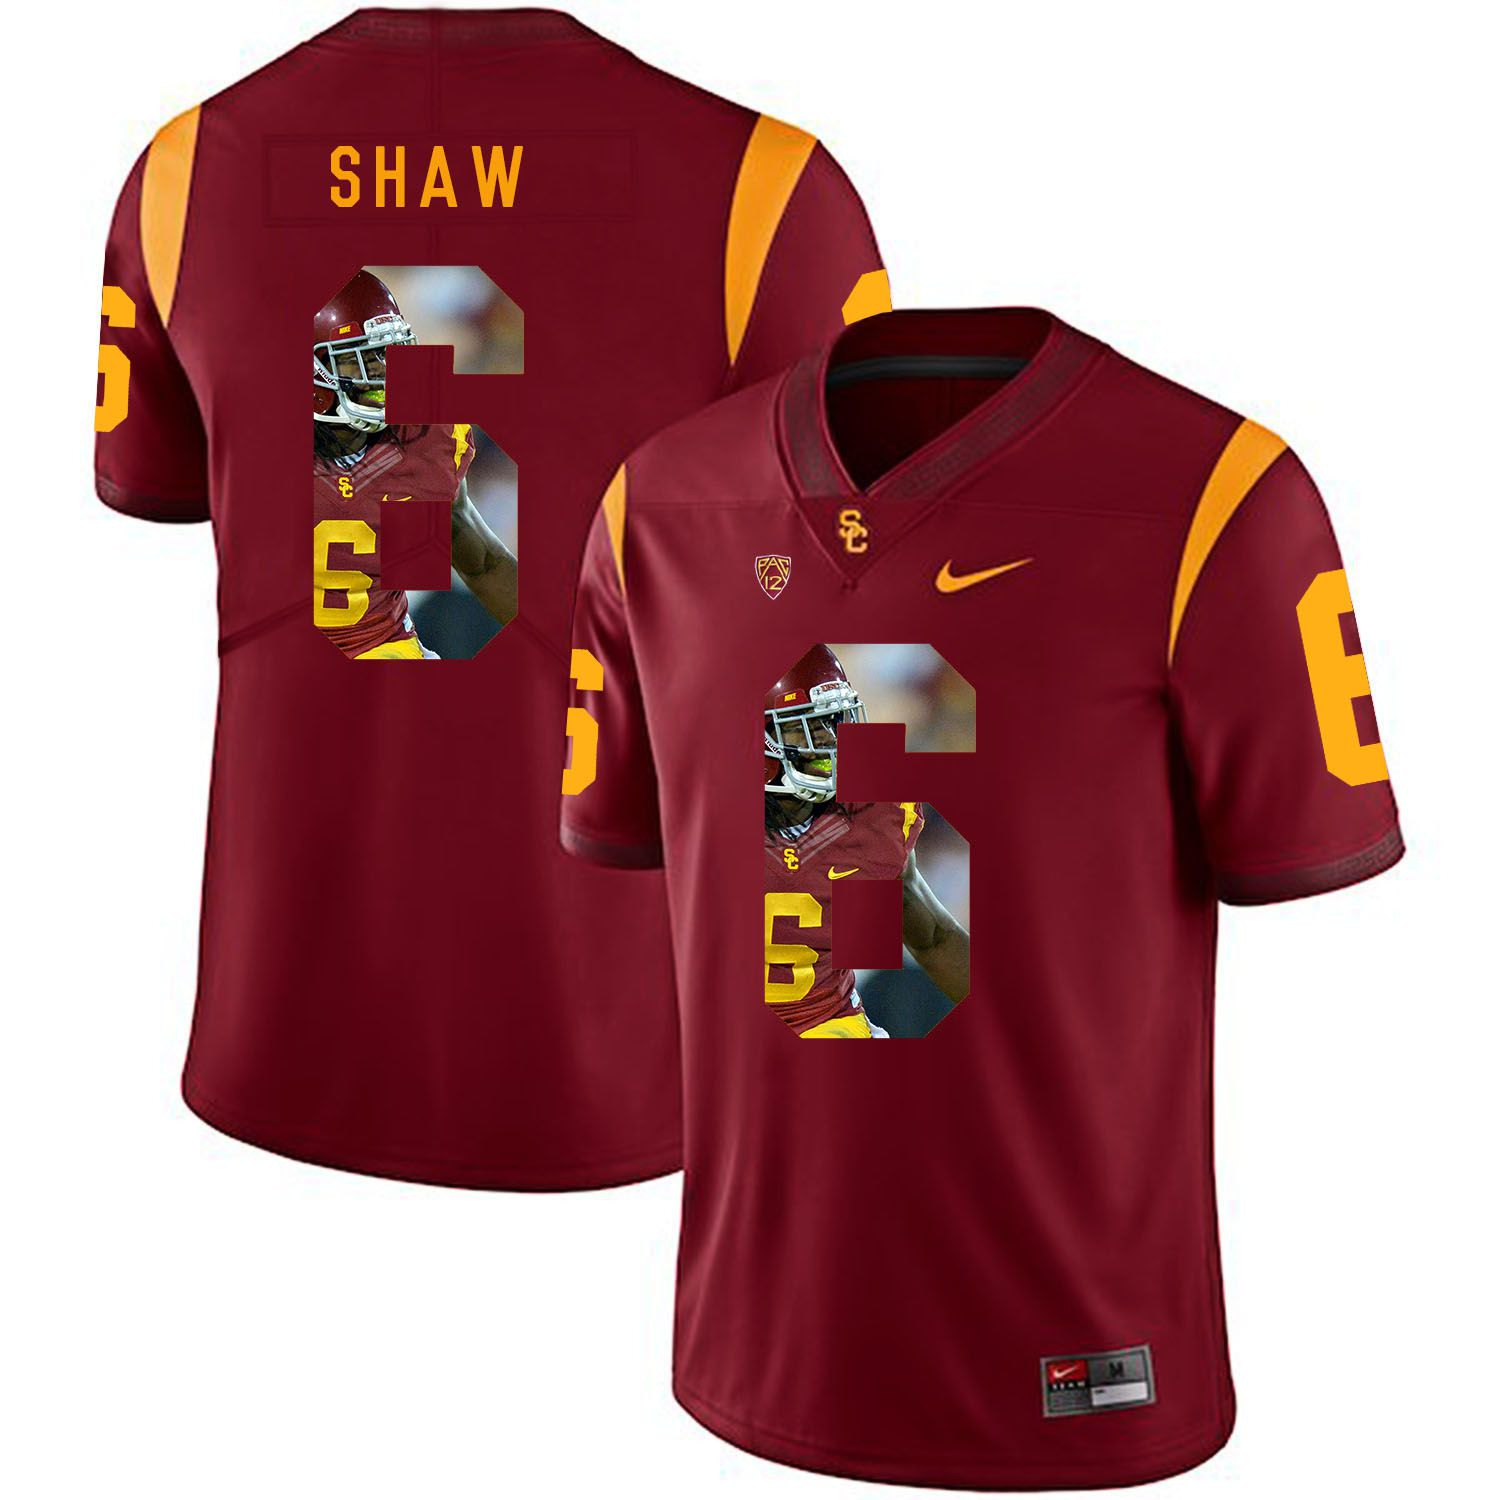 Men USC Trojans 6 Shaw Red Fashion Edition Customized NCAA Jerseys